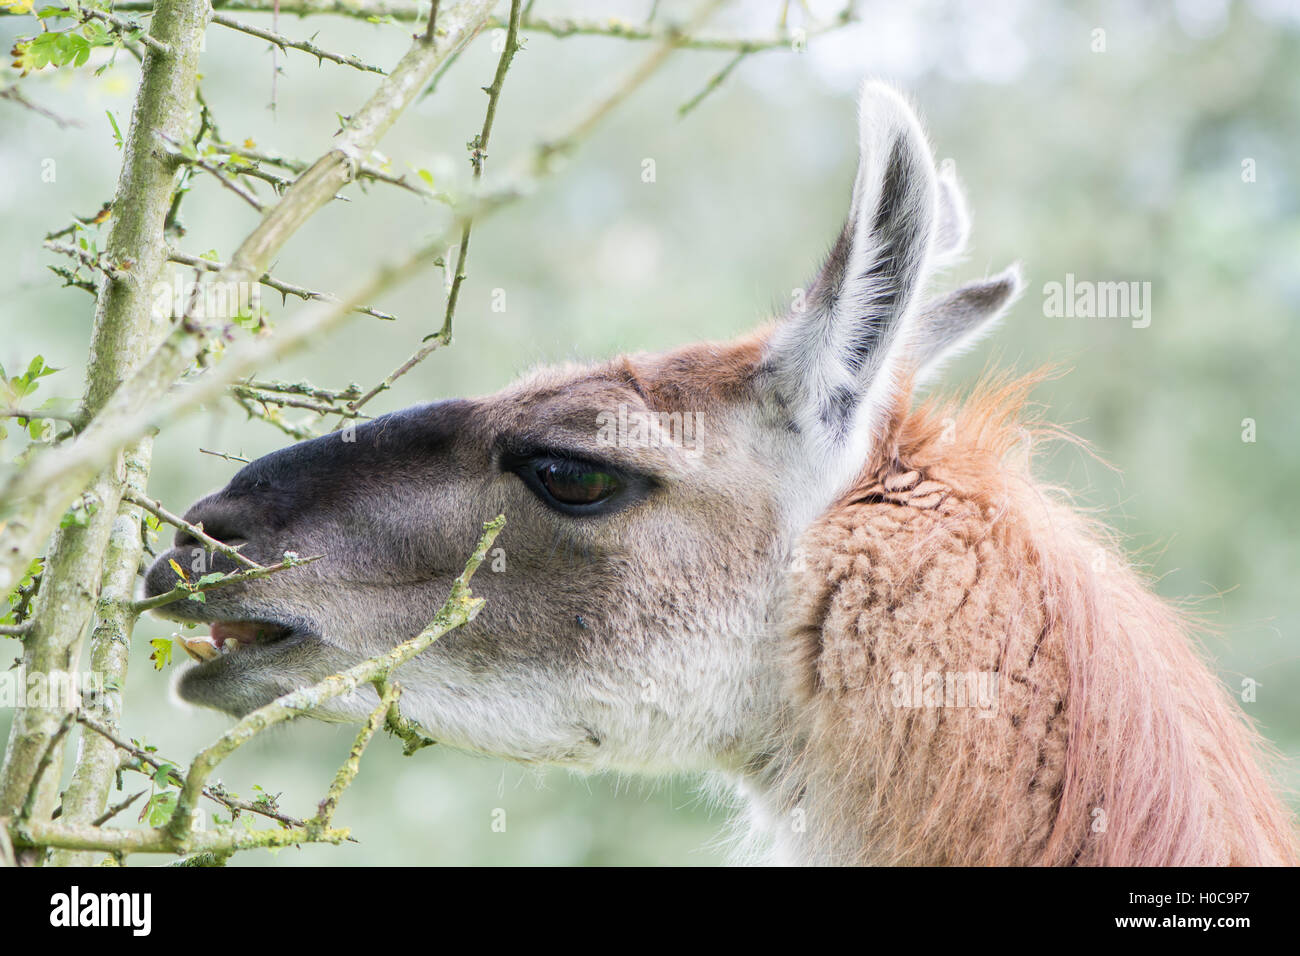 Llama delicately eating leaf from thorn bush. Domesticated camelid delicatly grazing leaves from hawthorn tree, - Stock Image